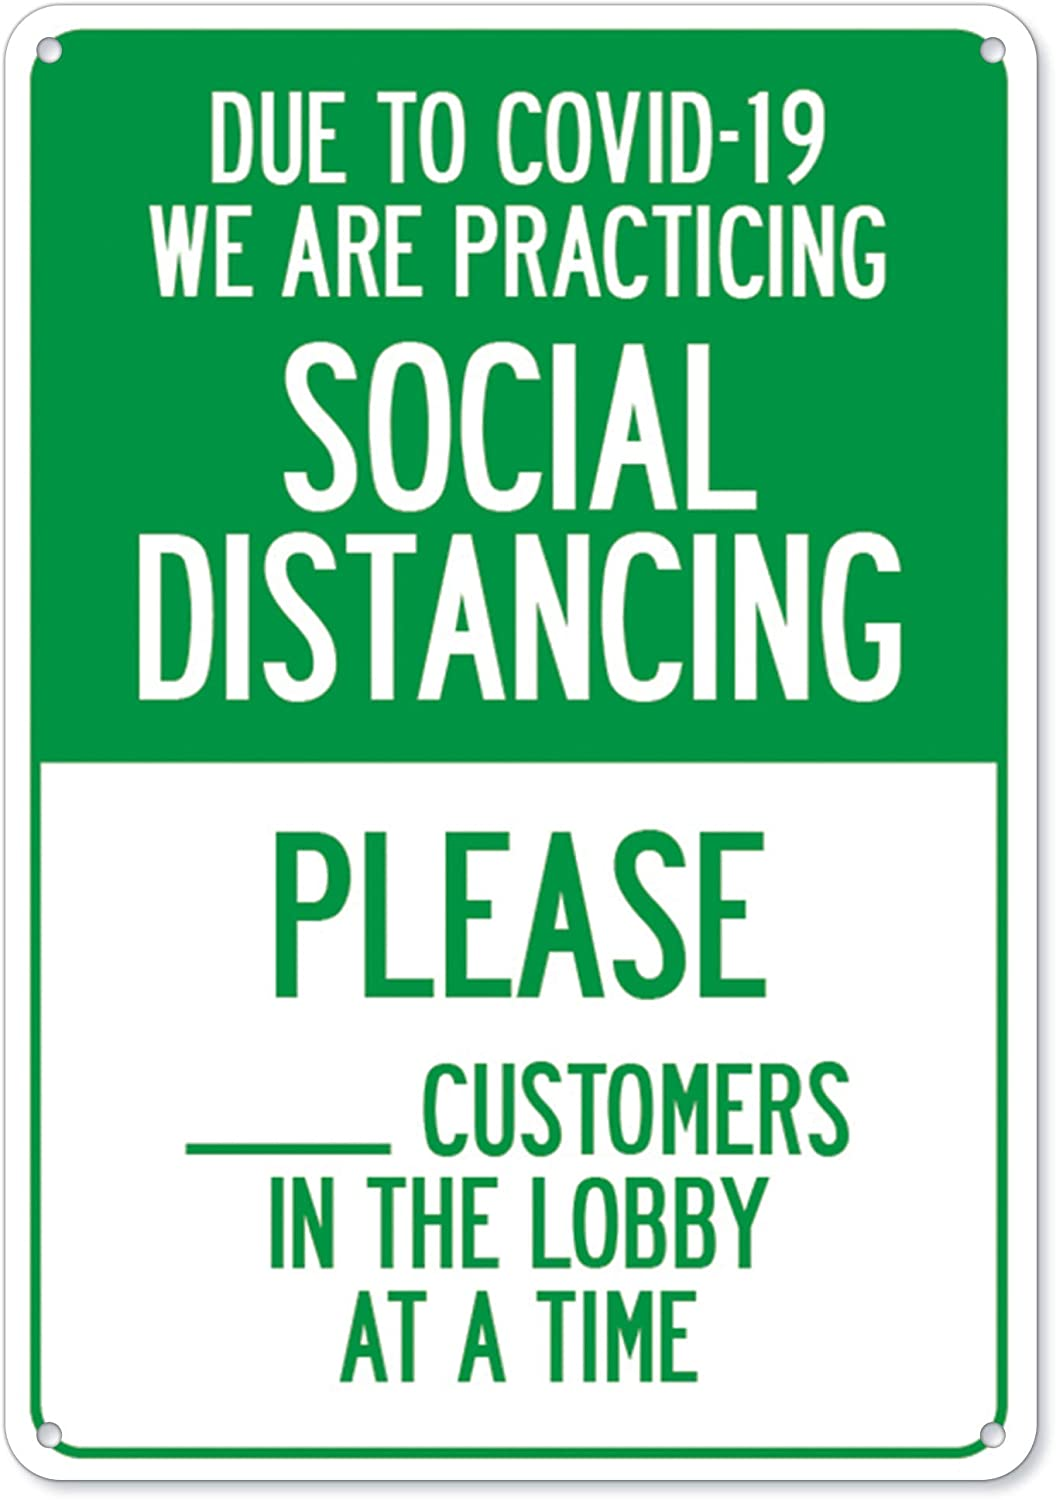 COVID-19 Notice Sign - Due Practicing We to Social are National Gorgeous uniform free shipping